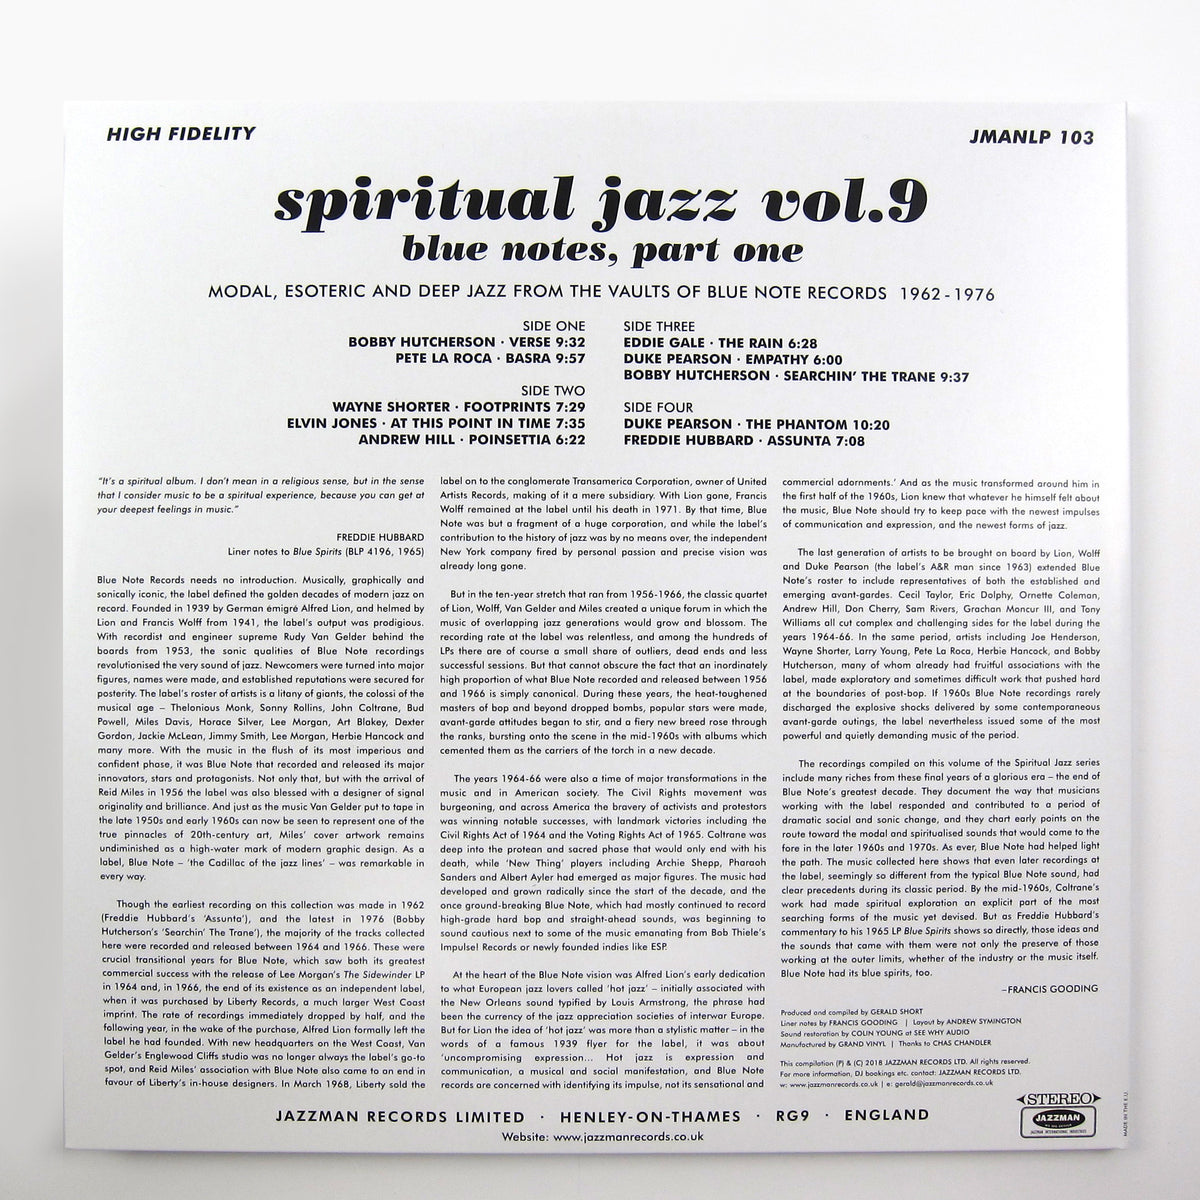 Jazzman: Spiritual Jazz Vol.9 - Blue Notes Part One Vinyl 2LP